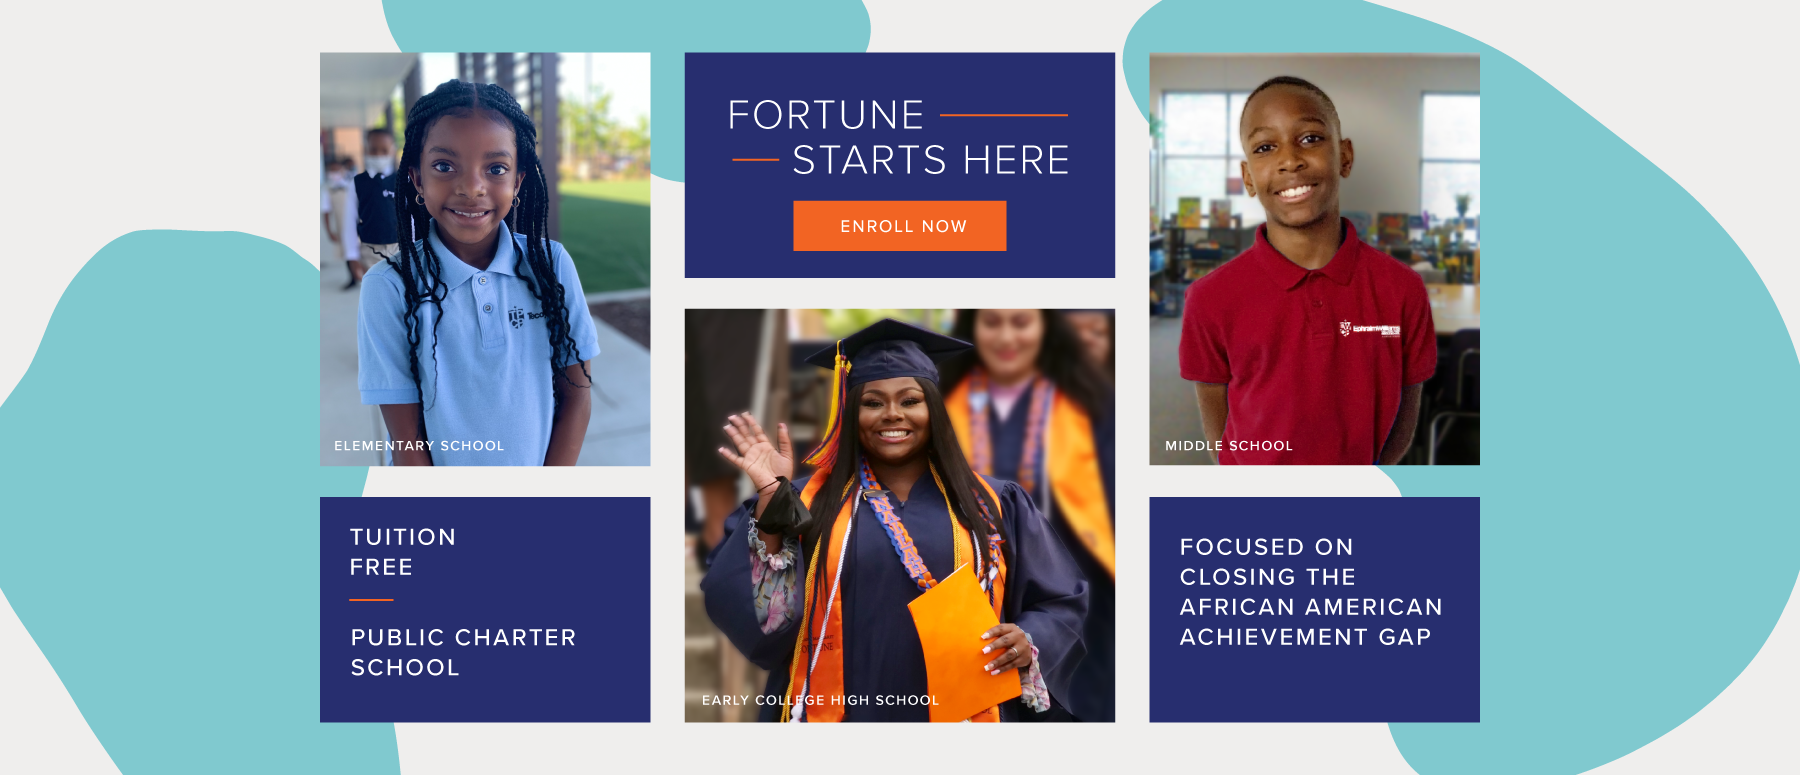 The graphic highlights the entry points for the Fortune School system: elementary, middle and high school.